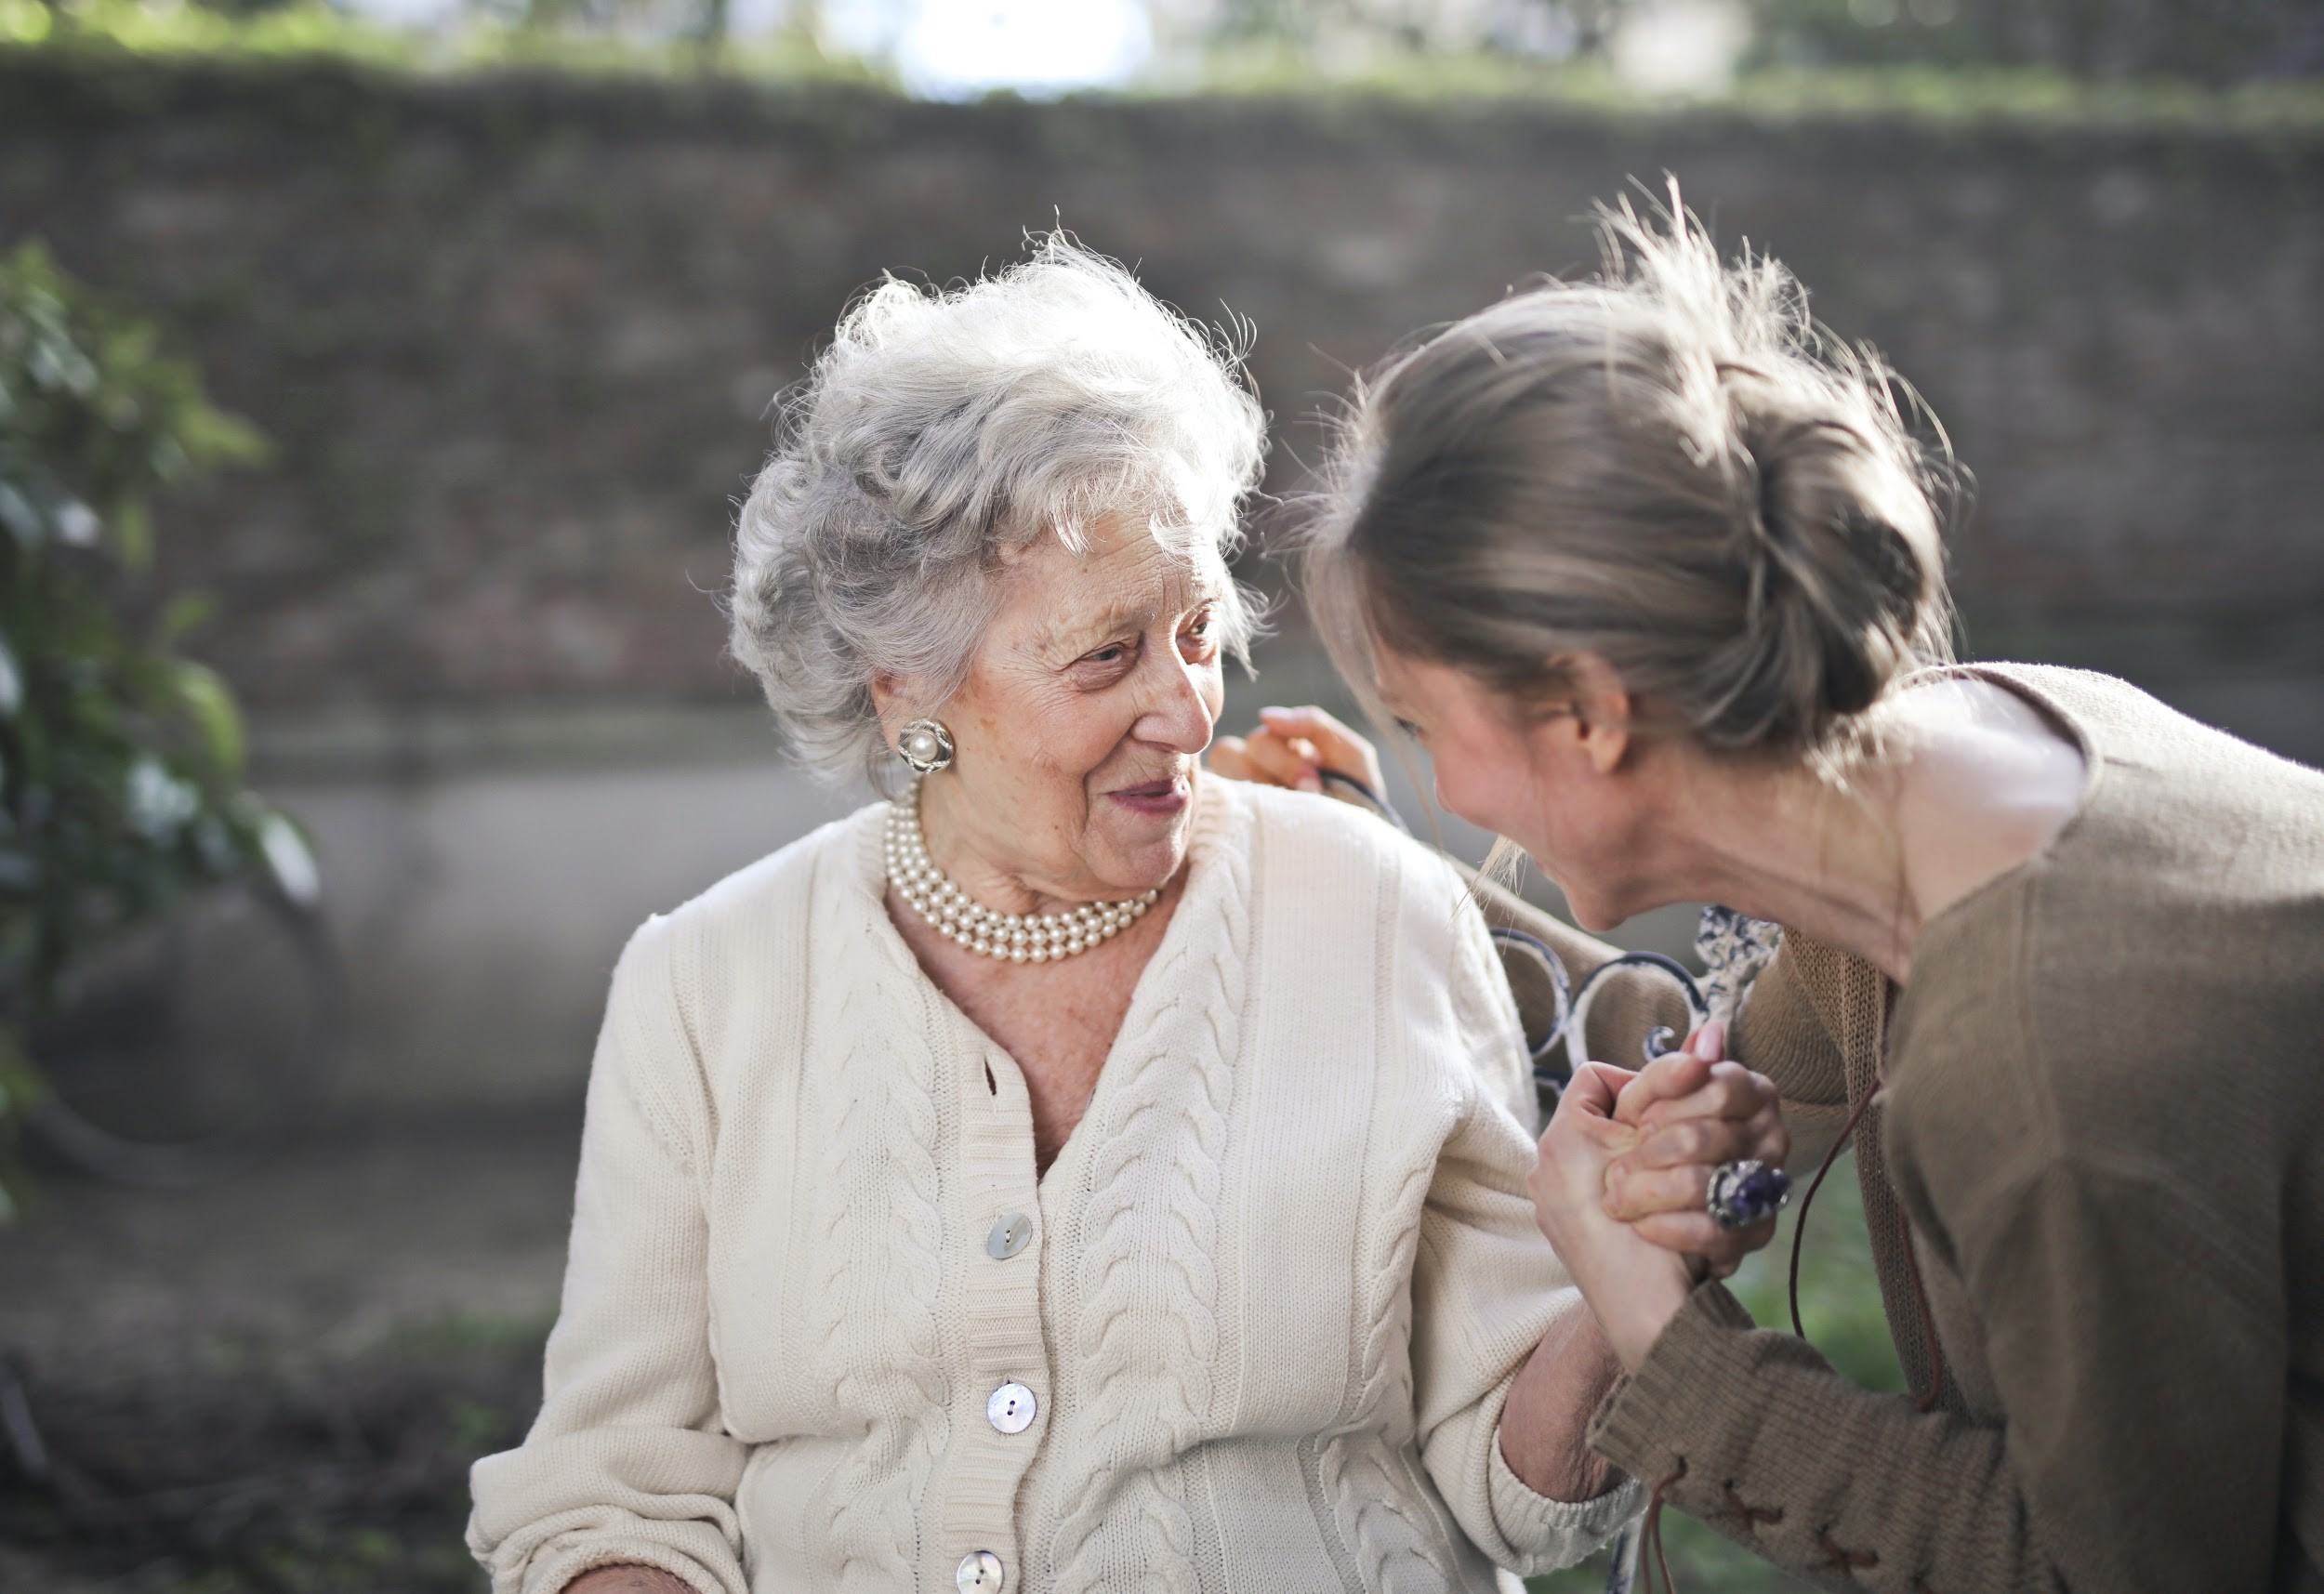 3 Critical Tips for Caring for a Loved One with Dementia